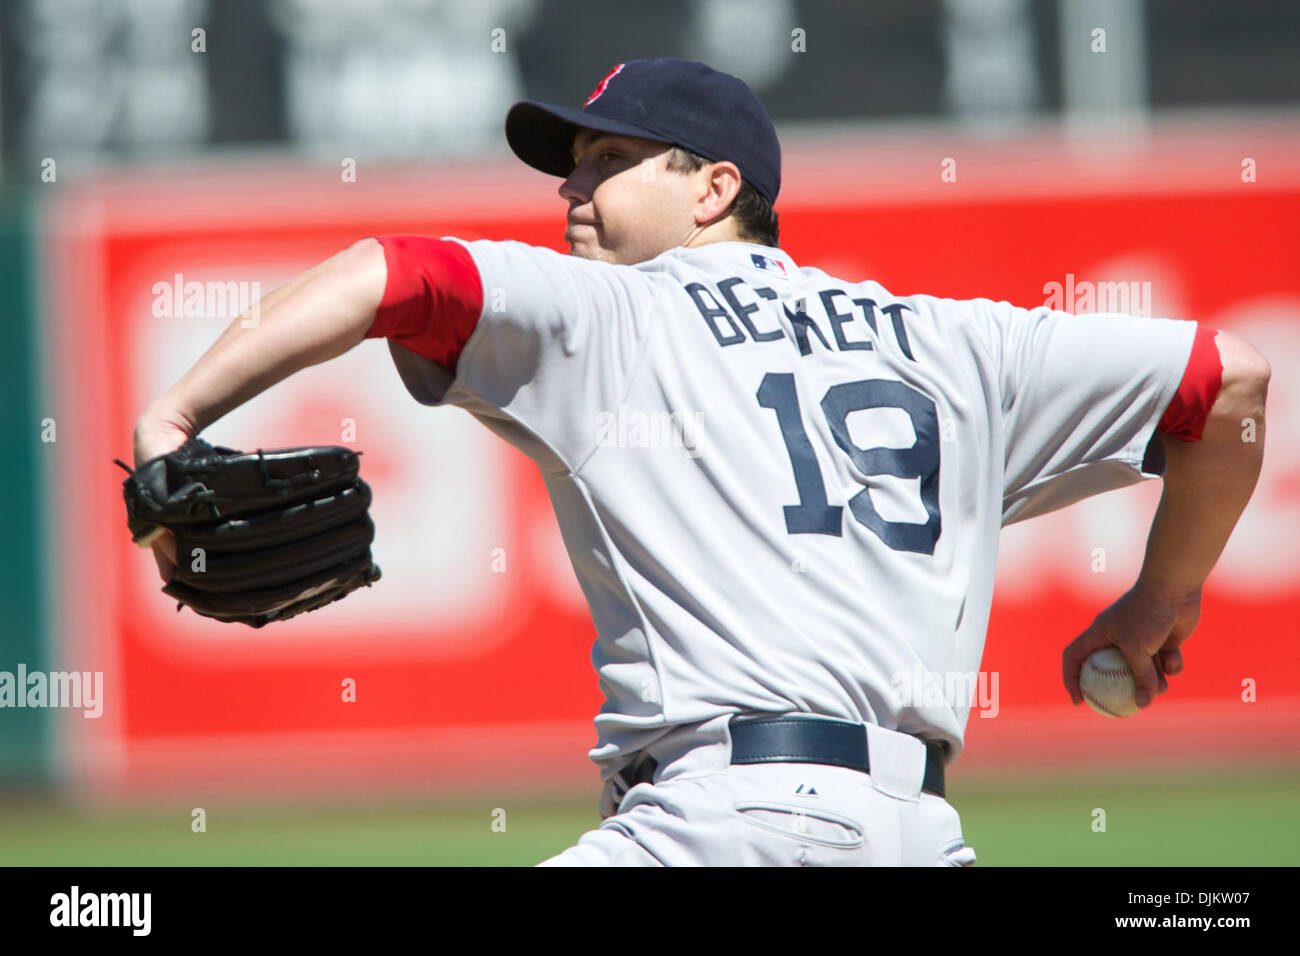 Sept. 12, 2010 - Oakland, California, United States of America - Red Sox pitcher Josh Beckett (19) pitches during Stock Photo